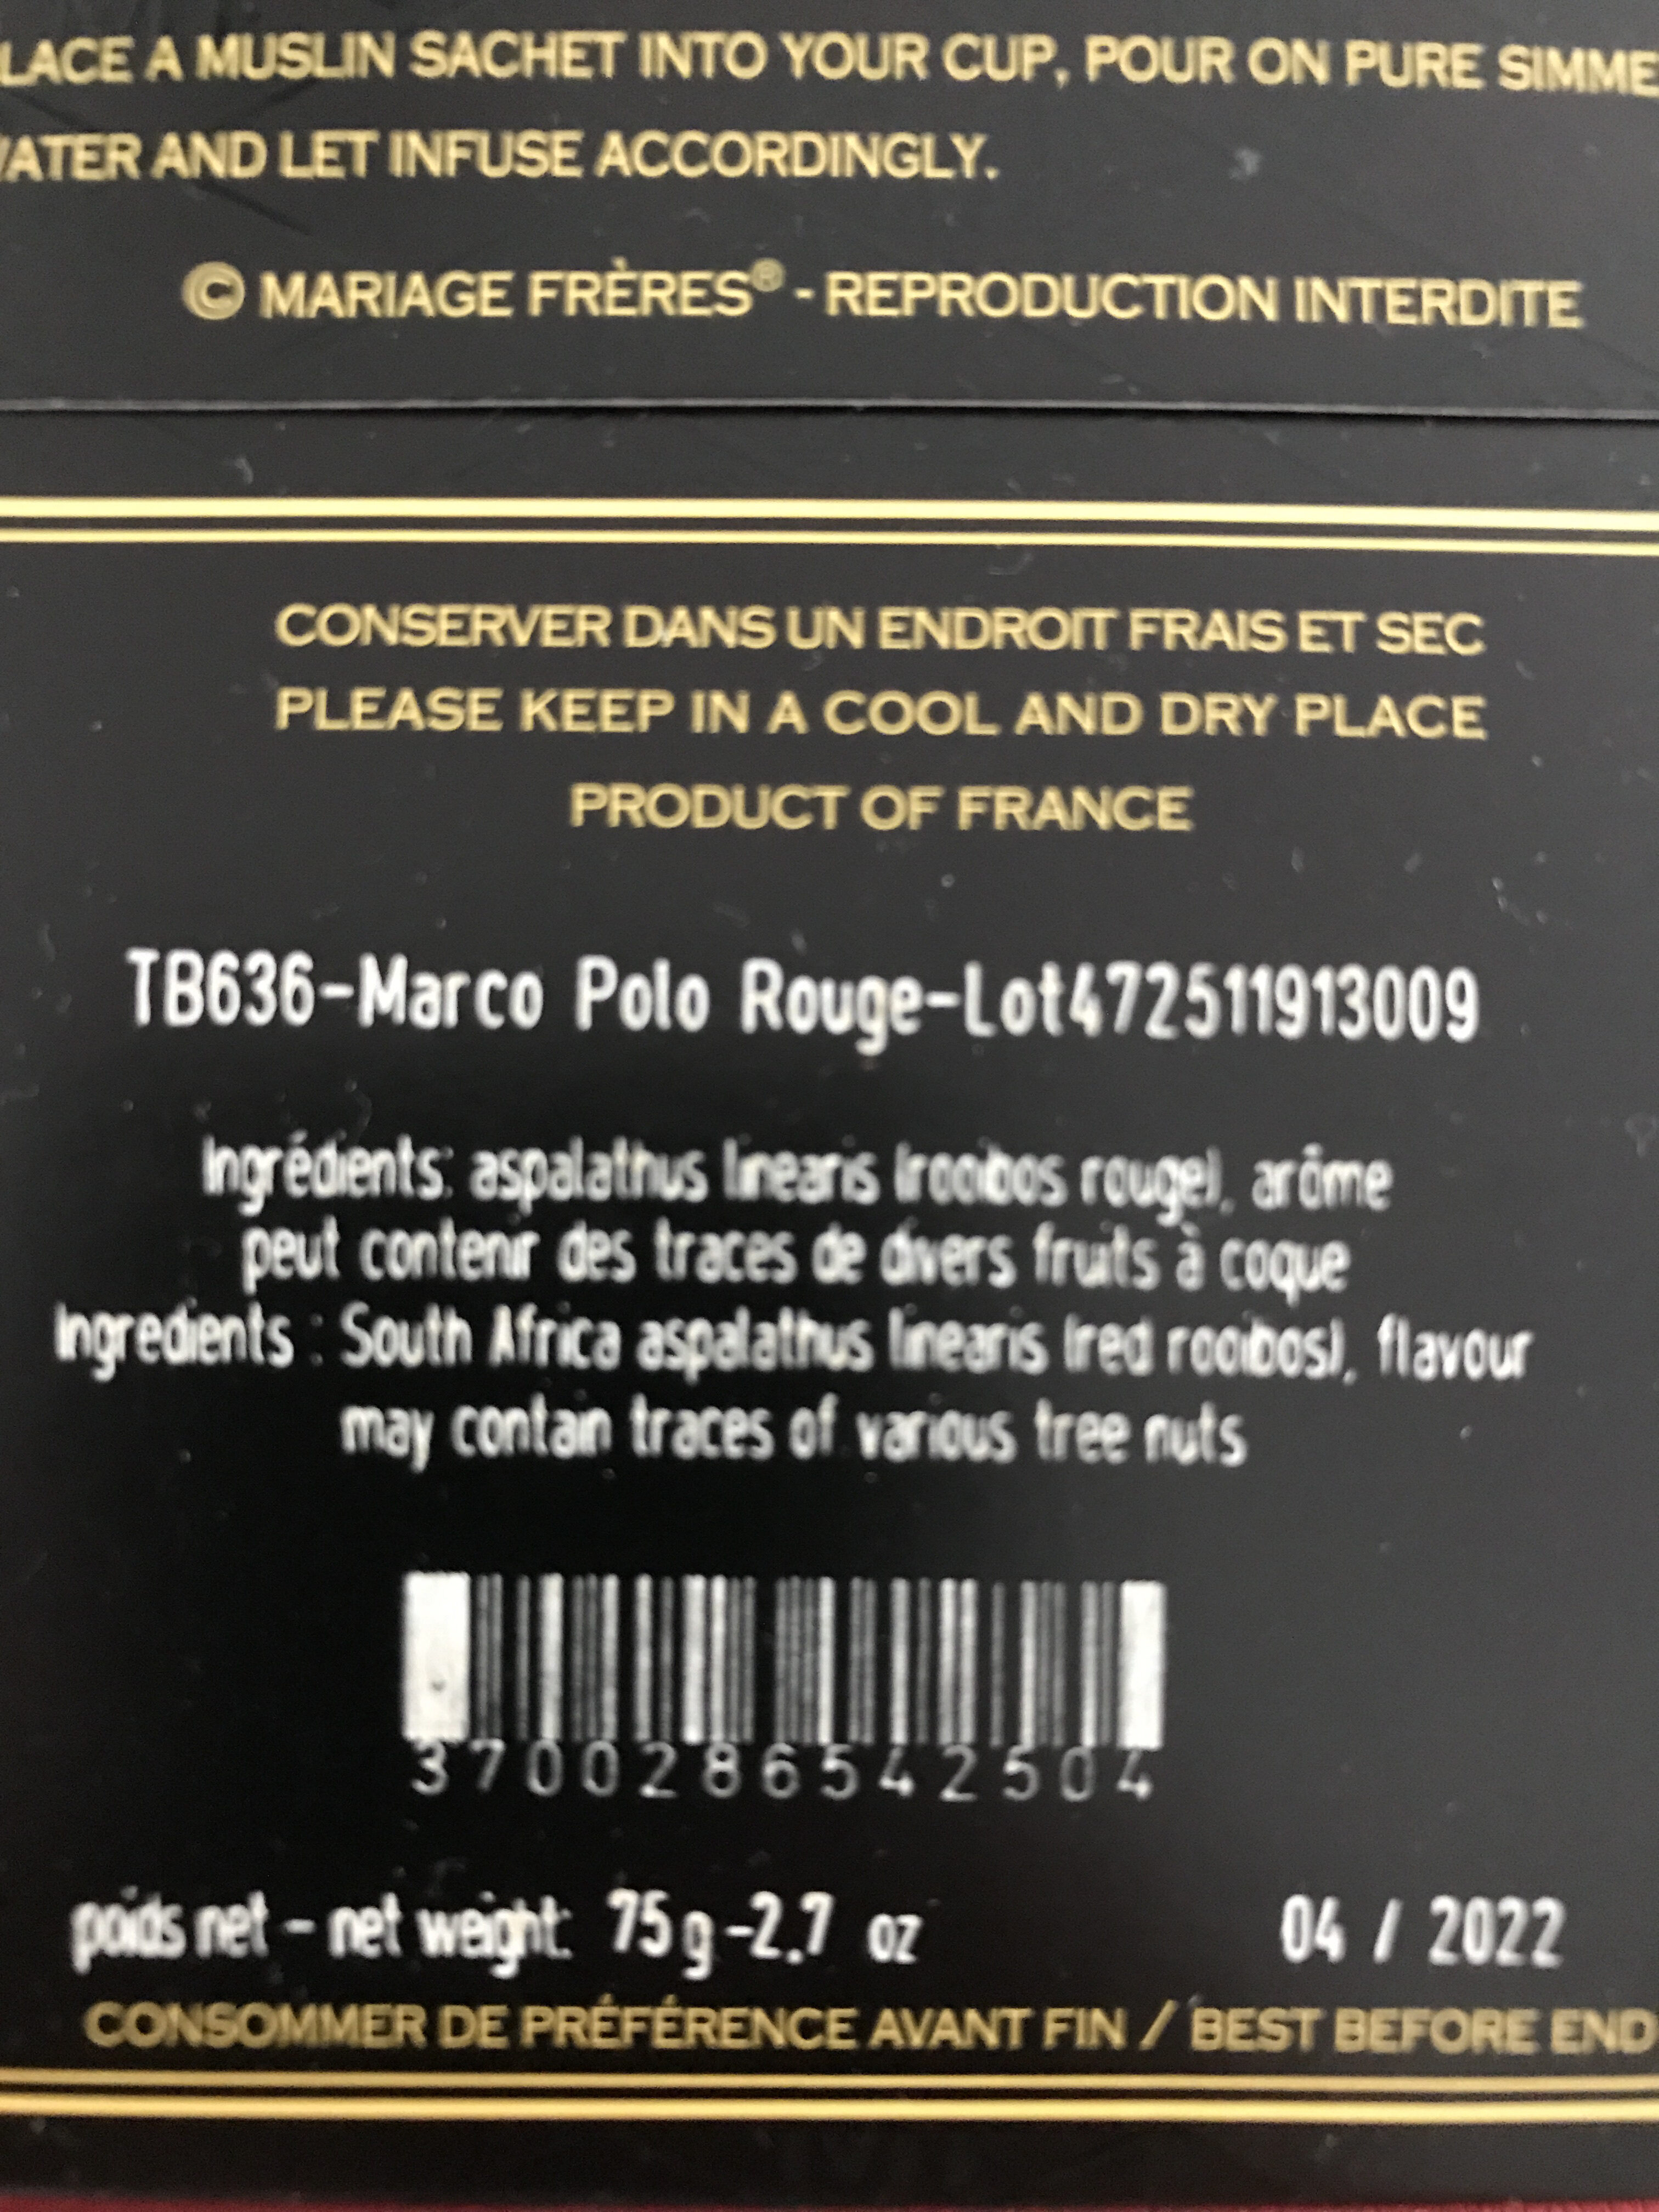 Mariage Freres Marco Polo Rouge Red Tea Bags From France - Informations nutritionnelles - fr